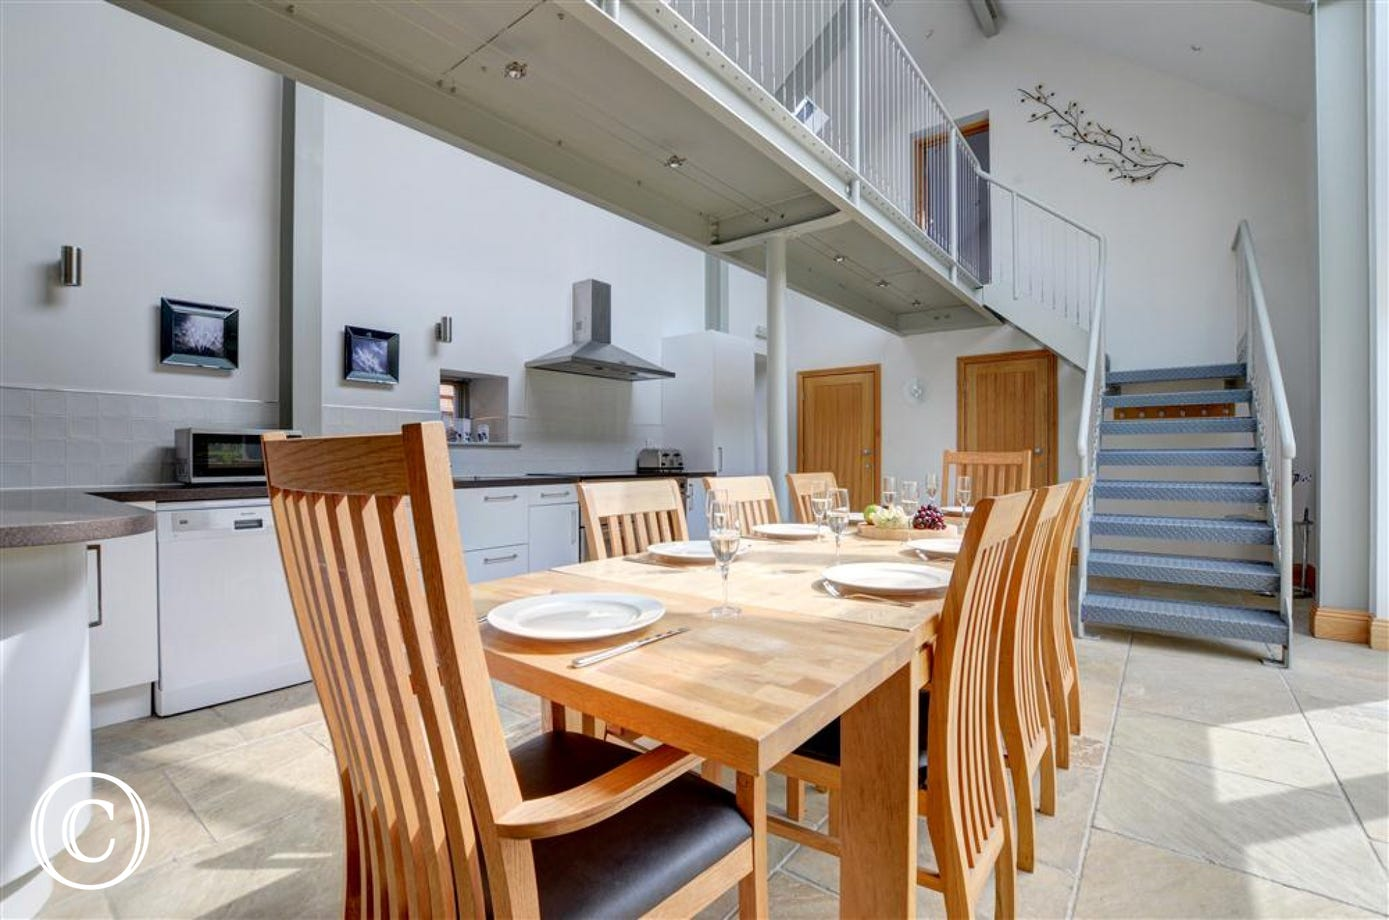 A the dining area sits undernesth a bridge between the upstairs bedrooms.